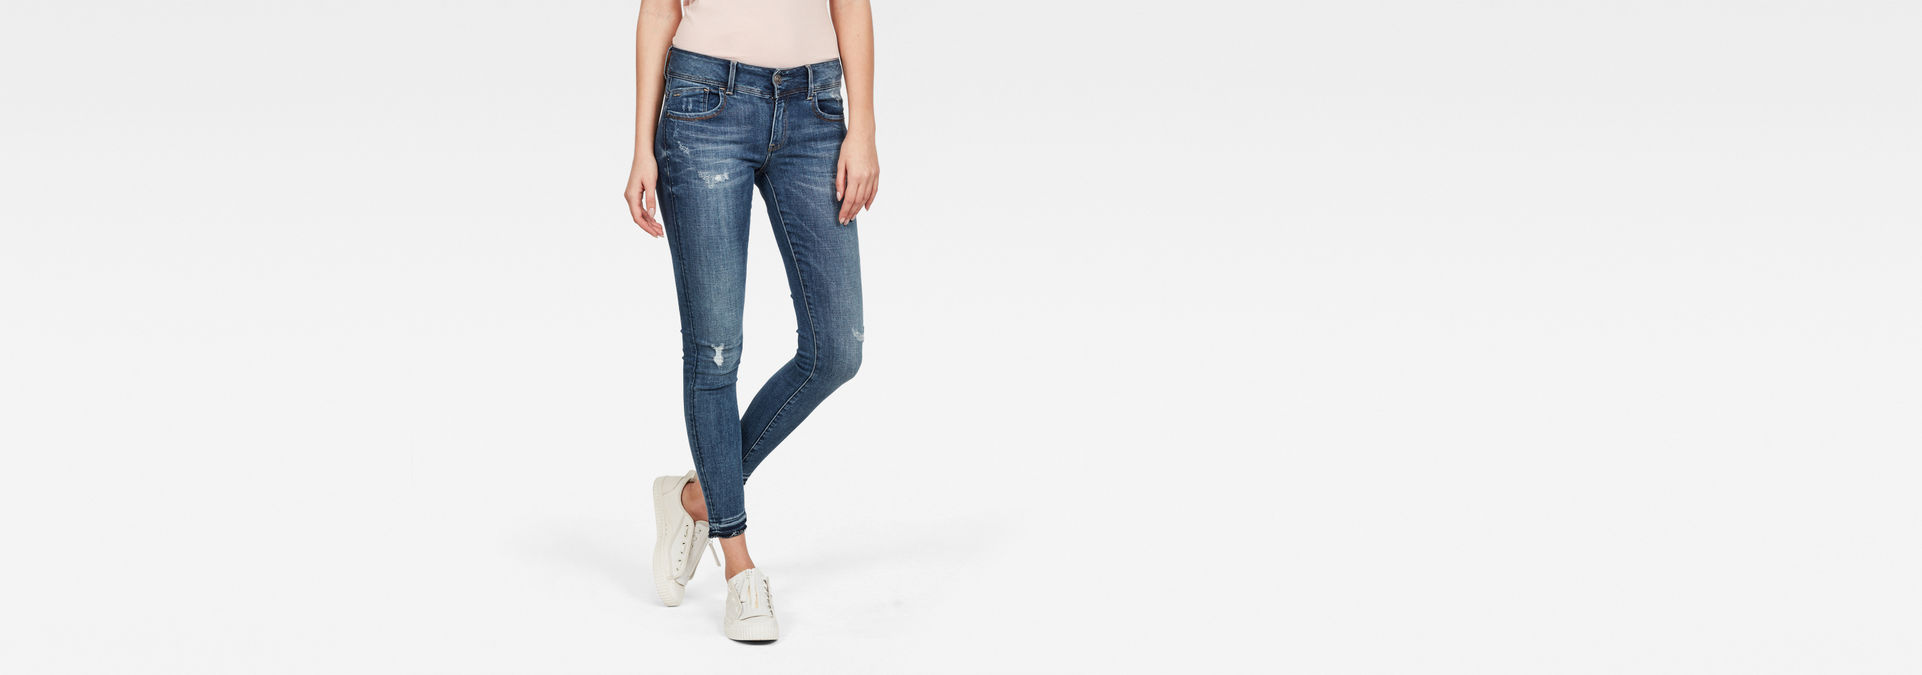 G Star RAW Denim Lynn Mid Waist Skinny Ripped Ankle Jeans in